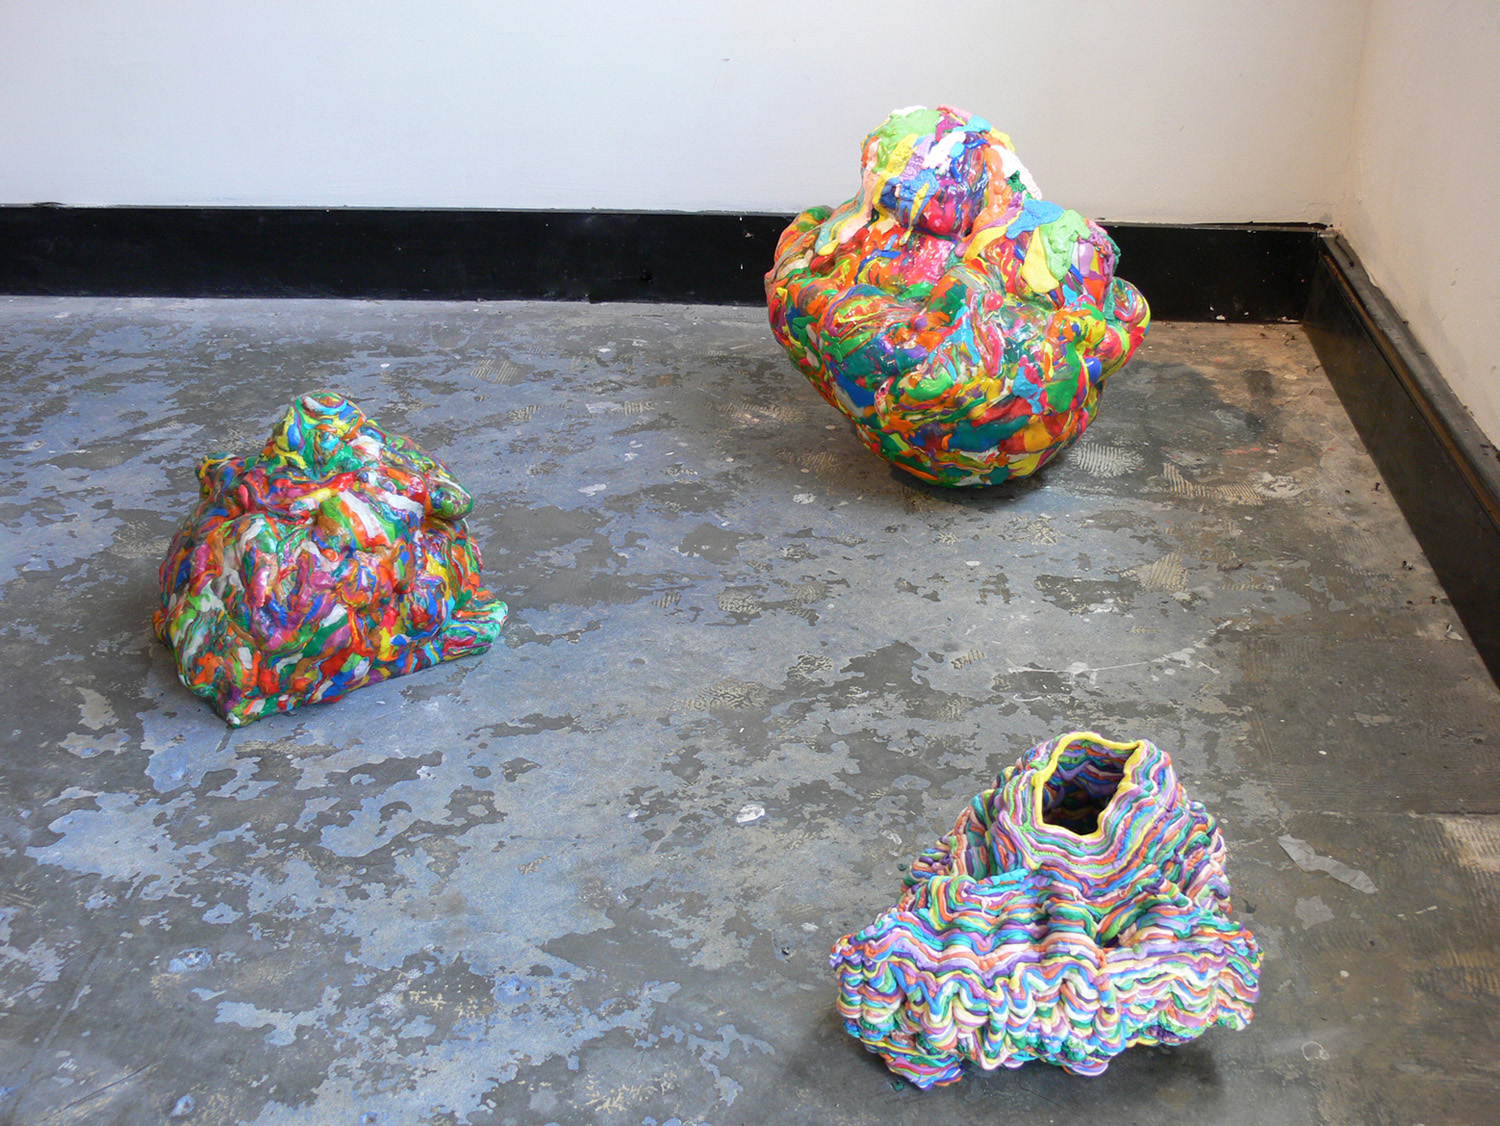 Aura Rock 1-3 (2012) (Installation View), polymer clay, expandable foam, wood, puff paint and varnish